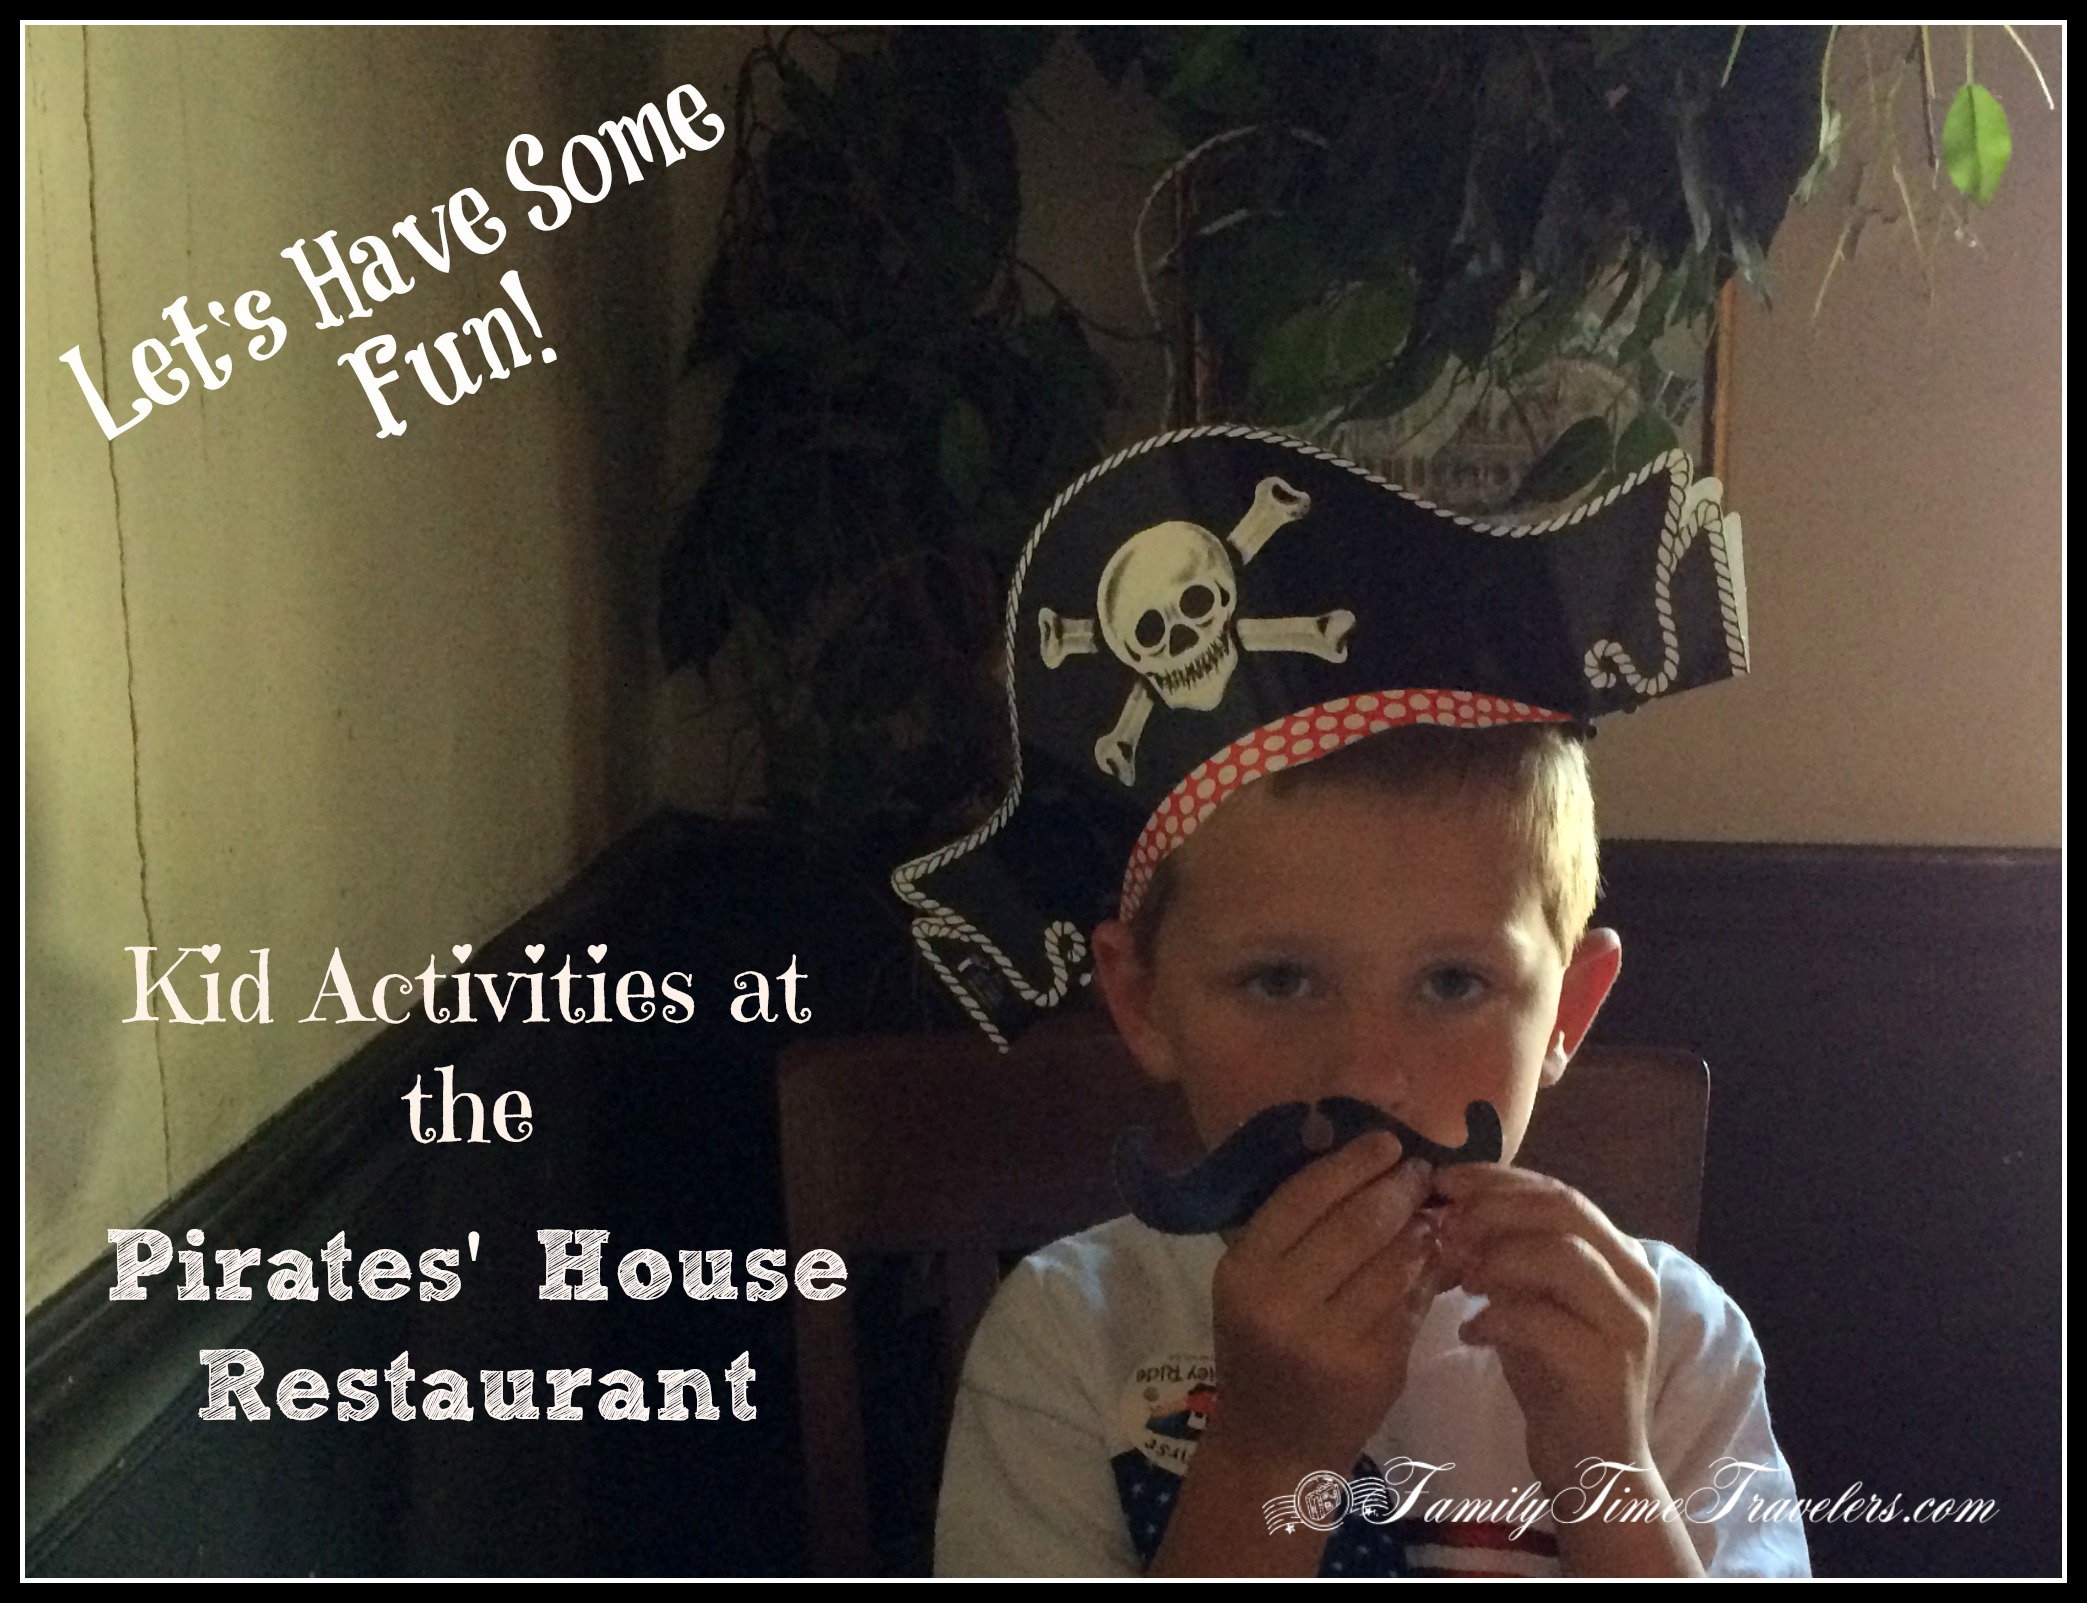 Kid Activities - Pirates's House Restaurant in Savannah, GA. by Family Time Travelers. Let's have some fun with history!